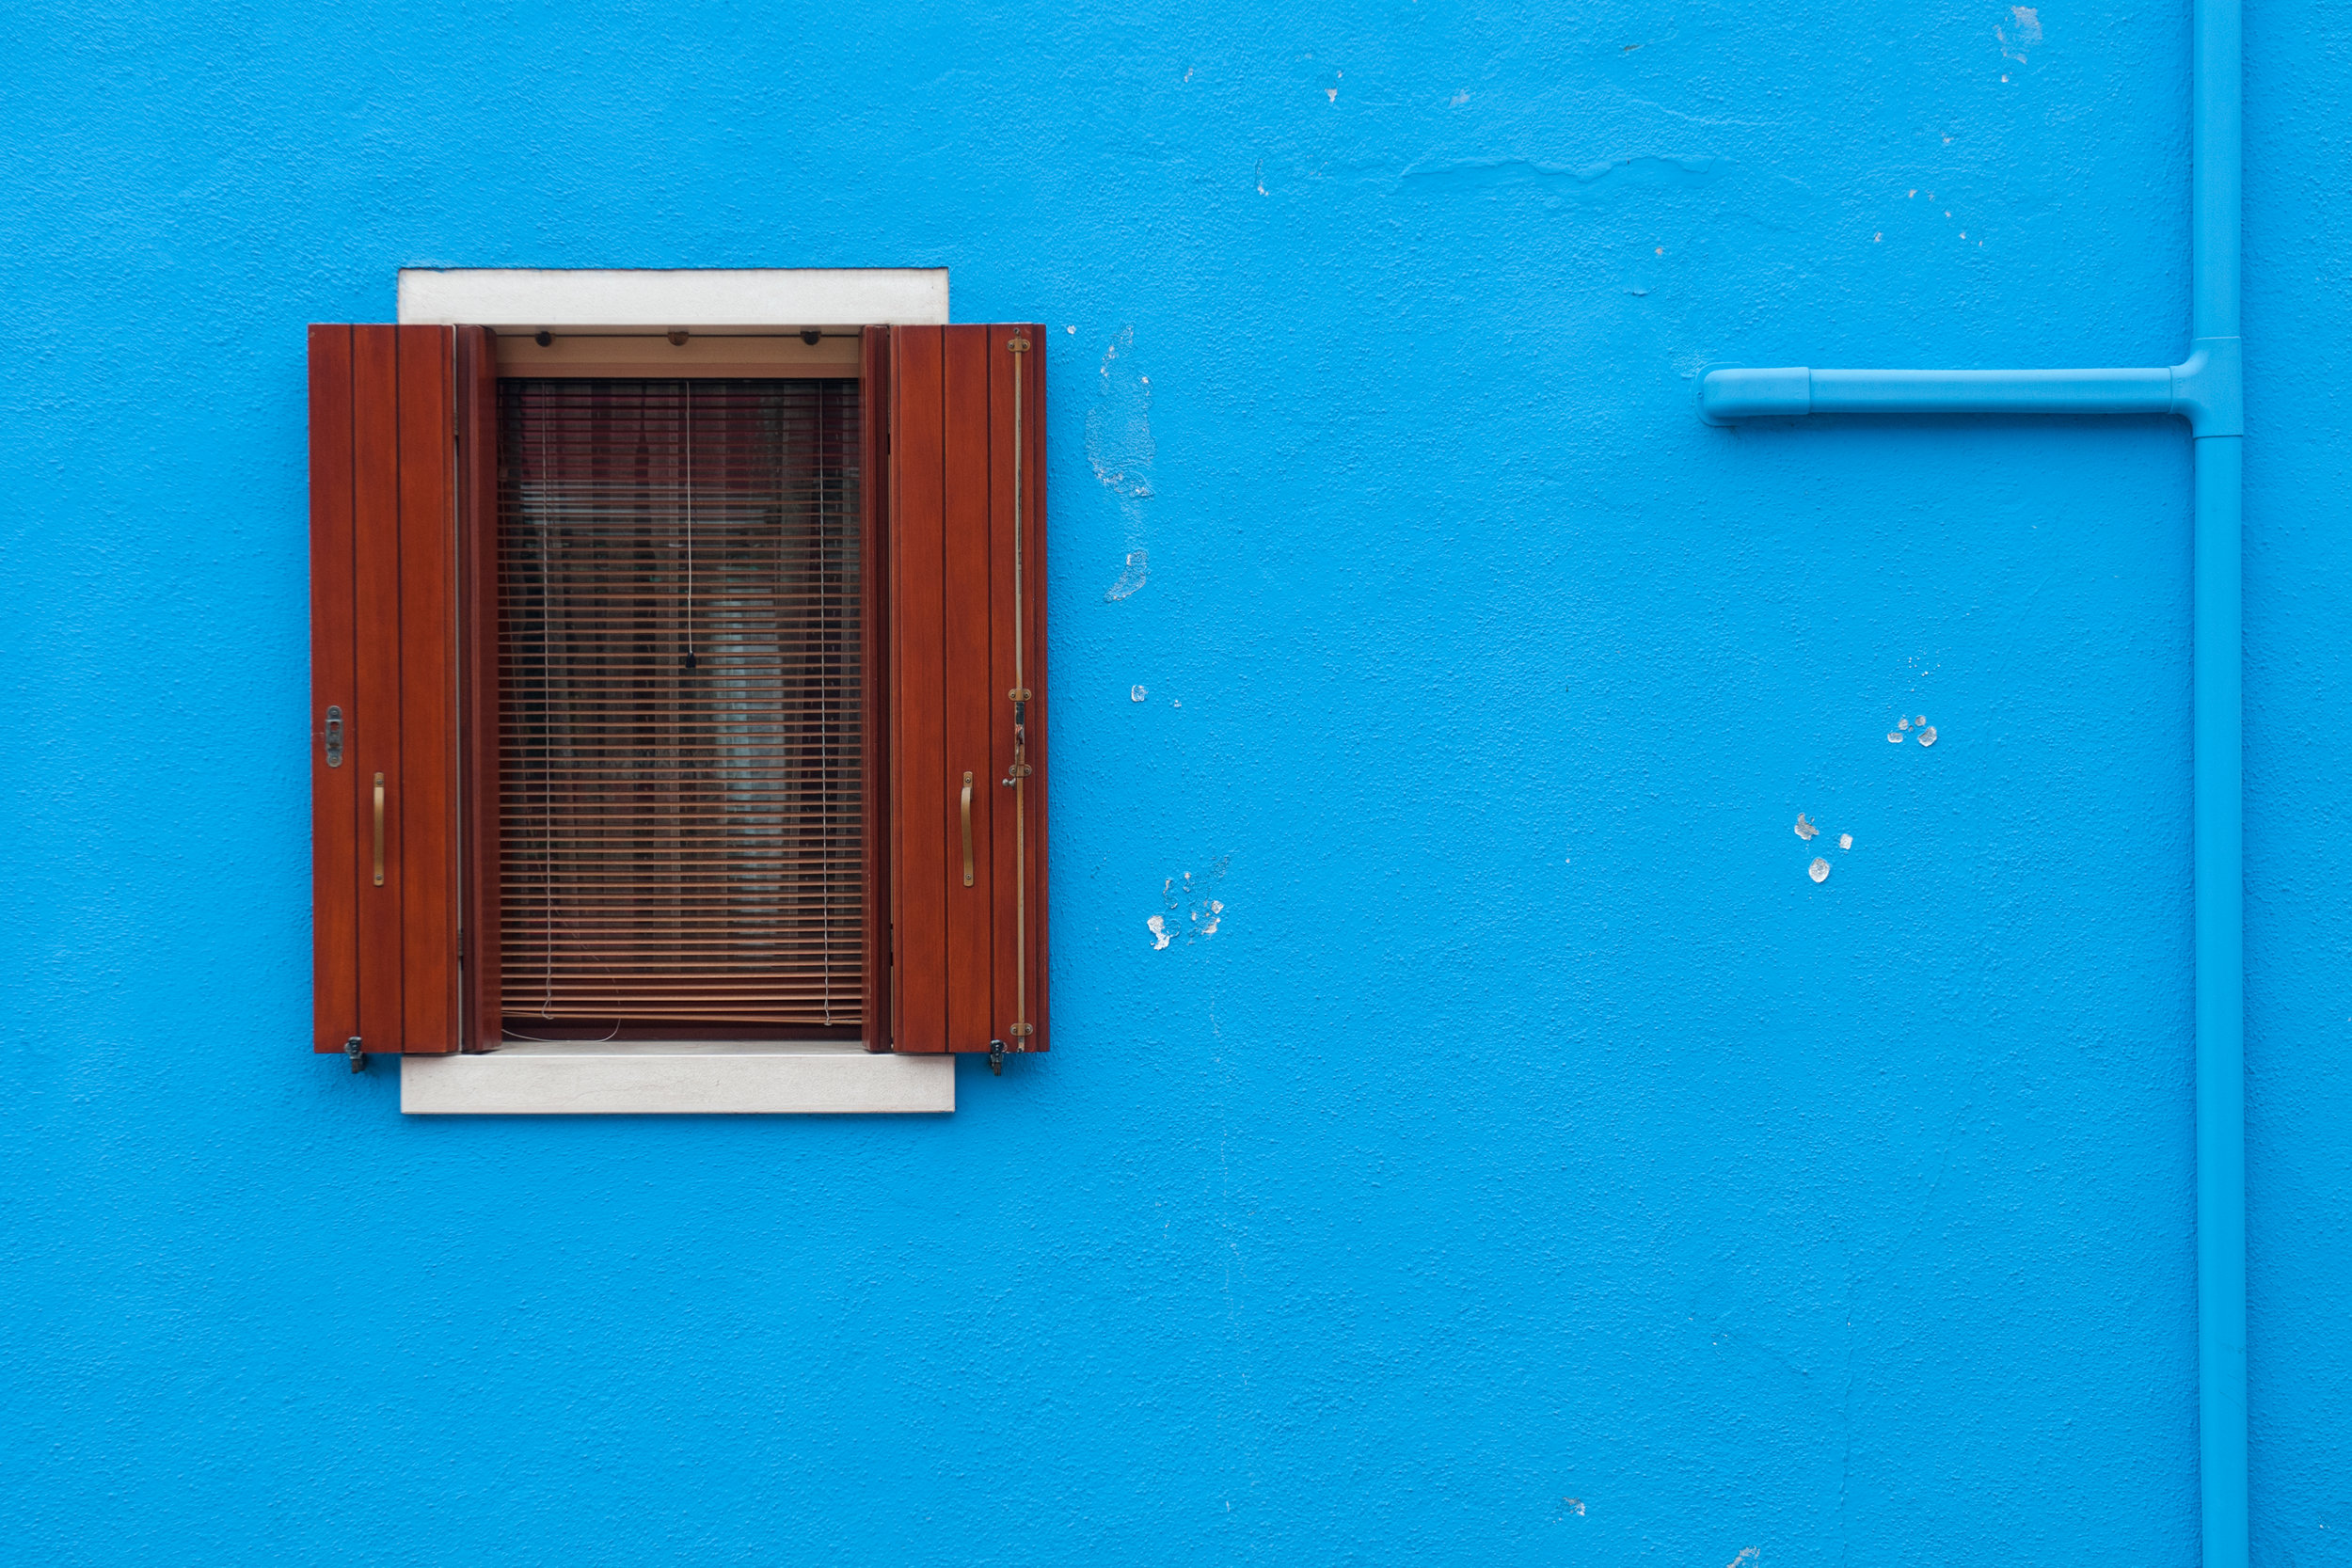 A window on a blue wall in the island of Burano, Venice, Italy.